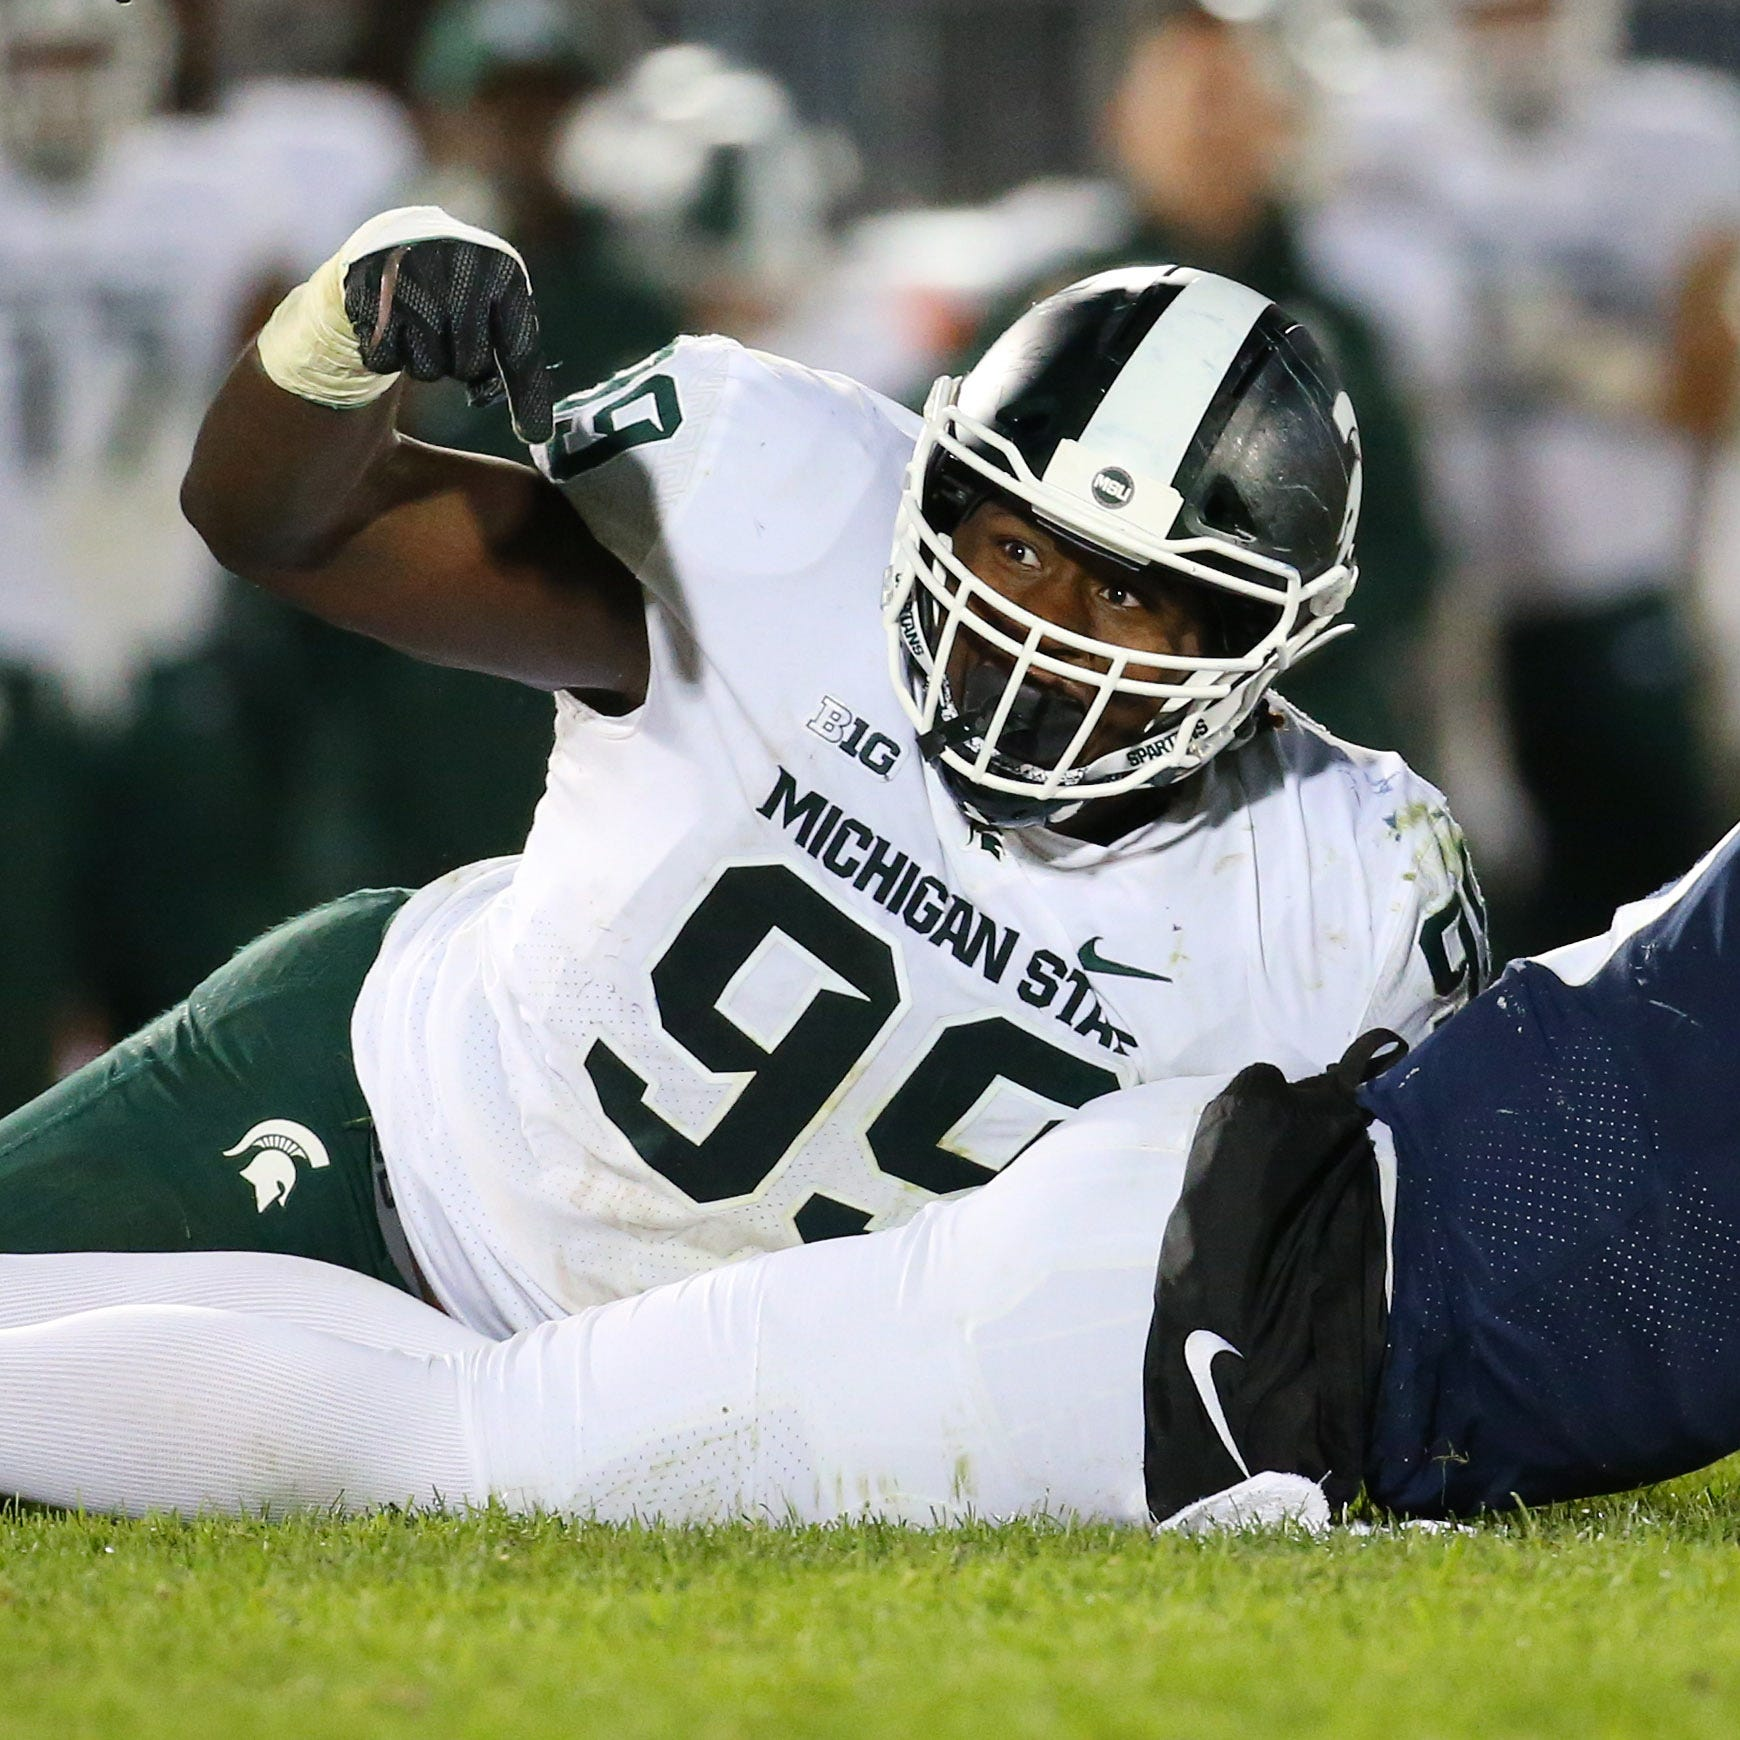 Couch: MSU under Dantonio is best when left for dead. There was more to beating Penn State.